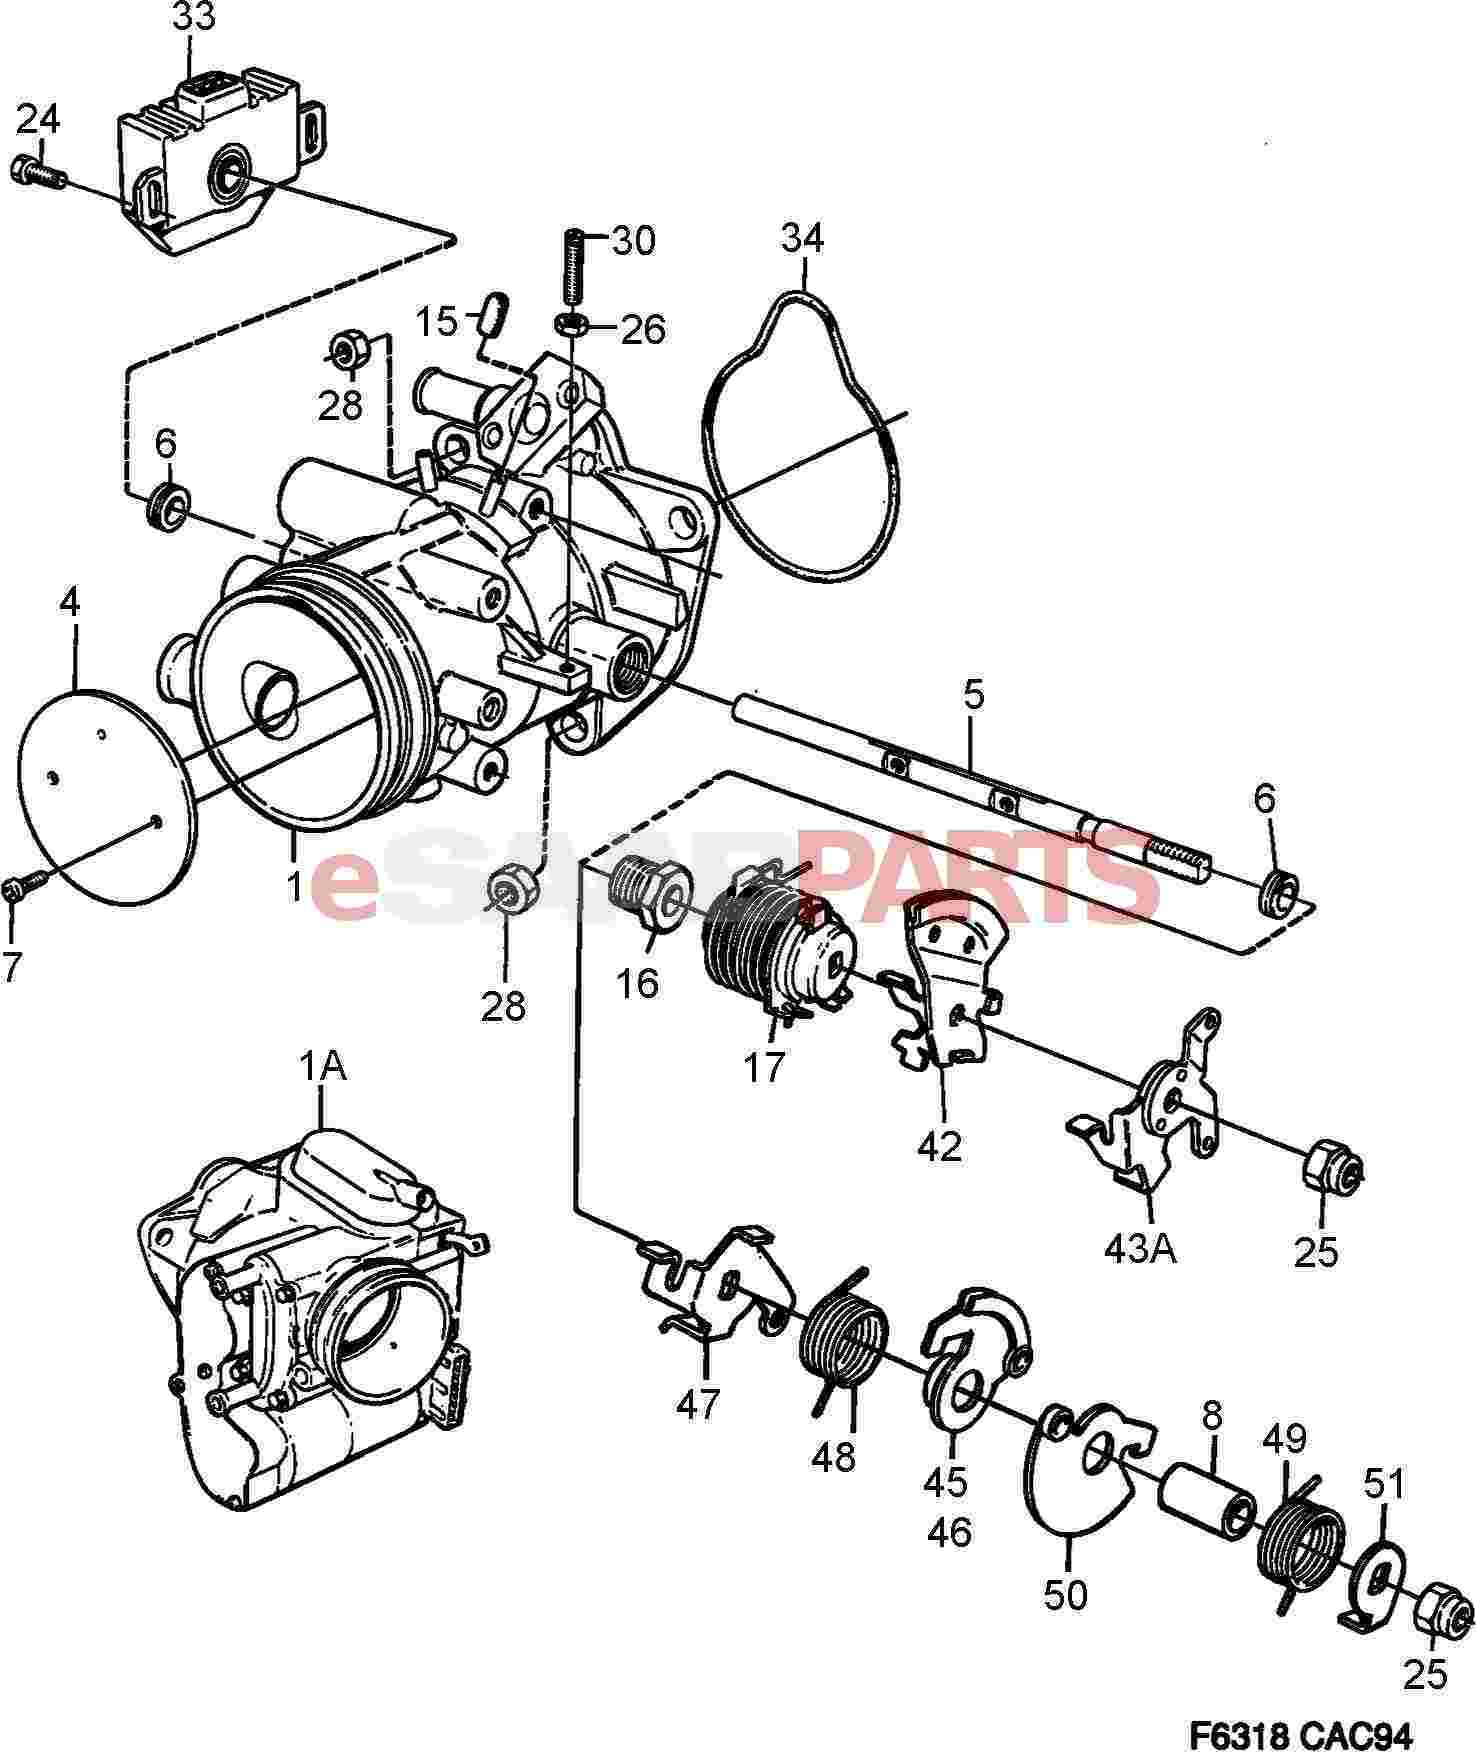 saab 900 engine parts diagram 97